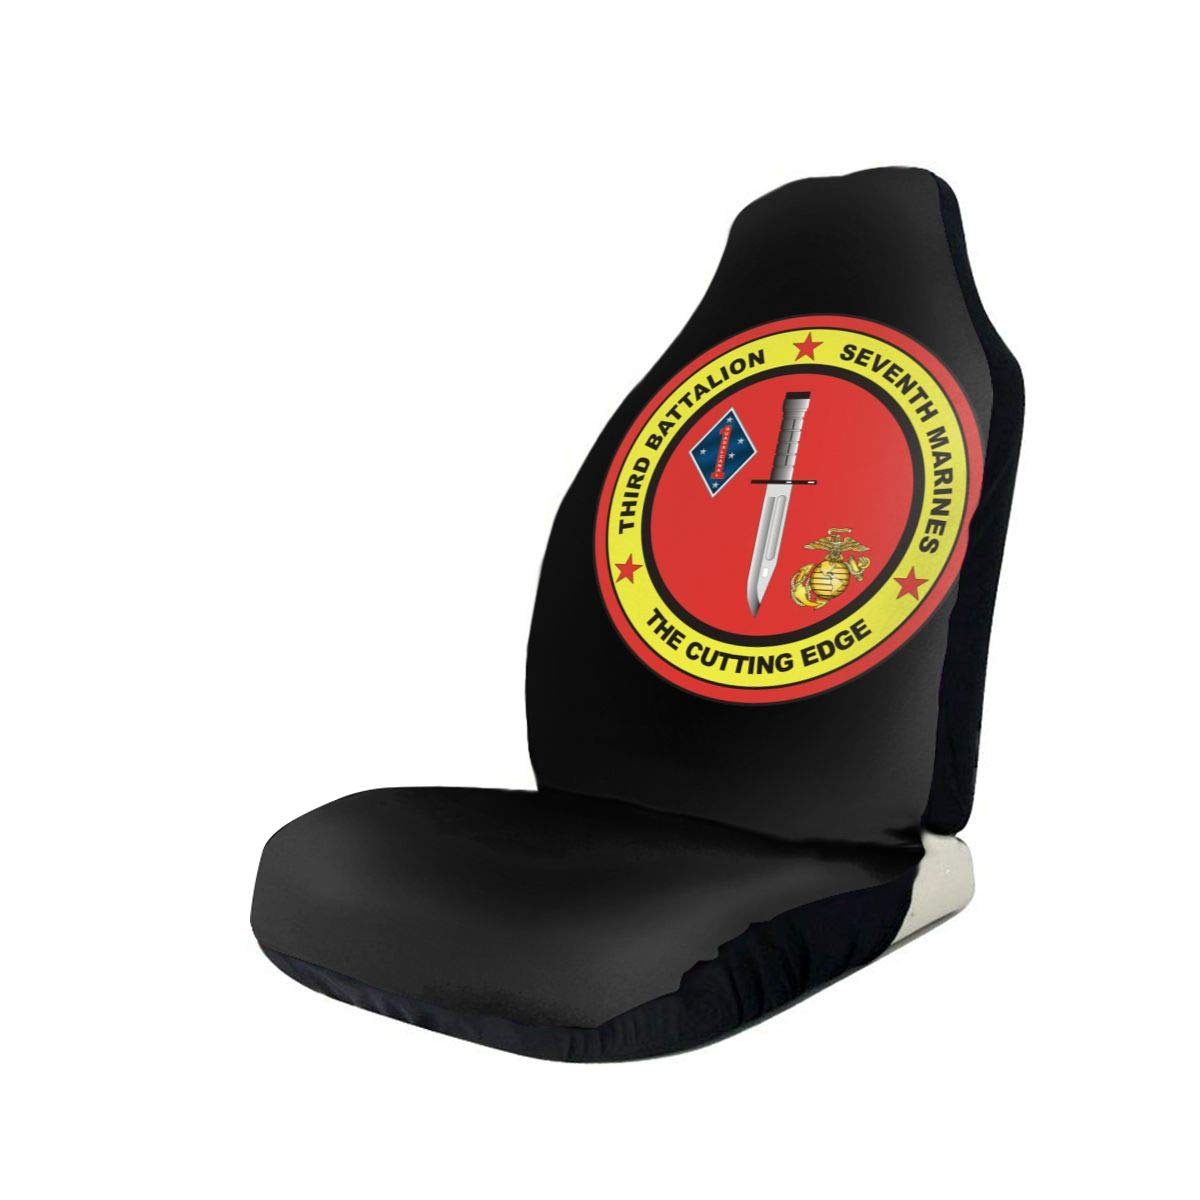 3rd Battalion 7th Marines Anti-Skid and Waterproof Car Seat Covers Protector Fits Most Cars, Auto SUVs Trucks